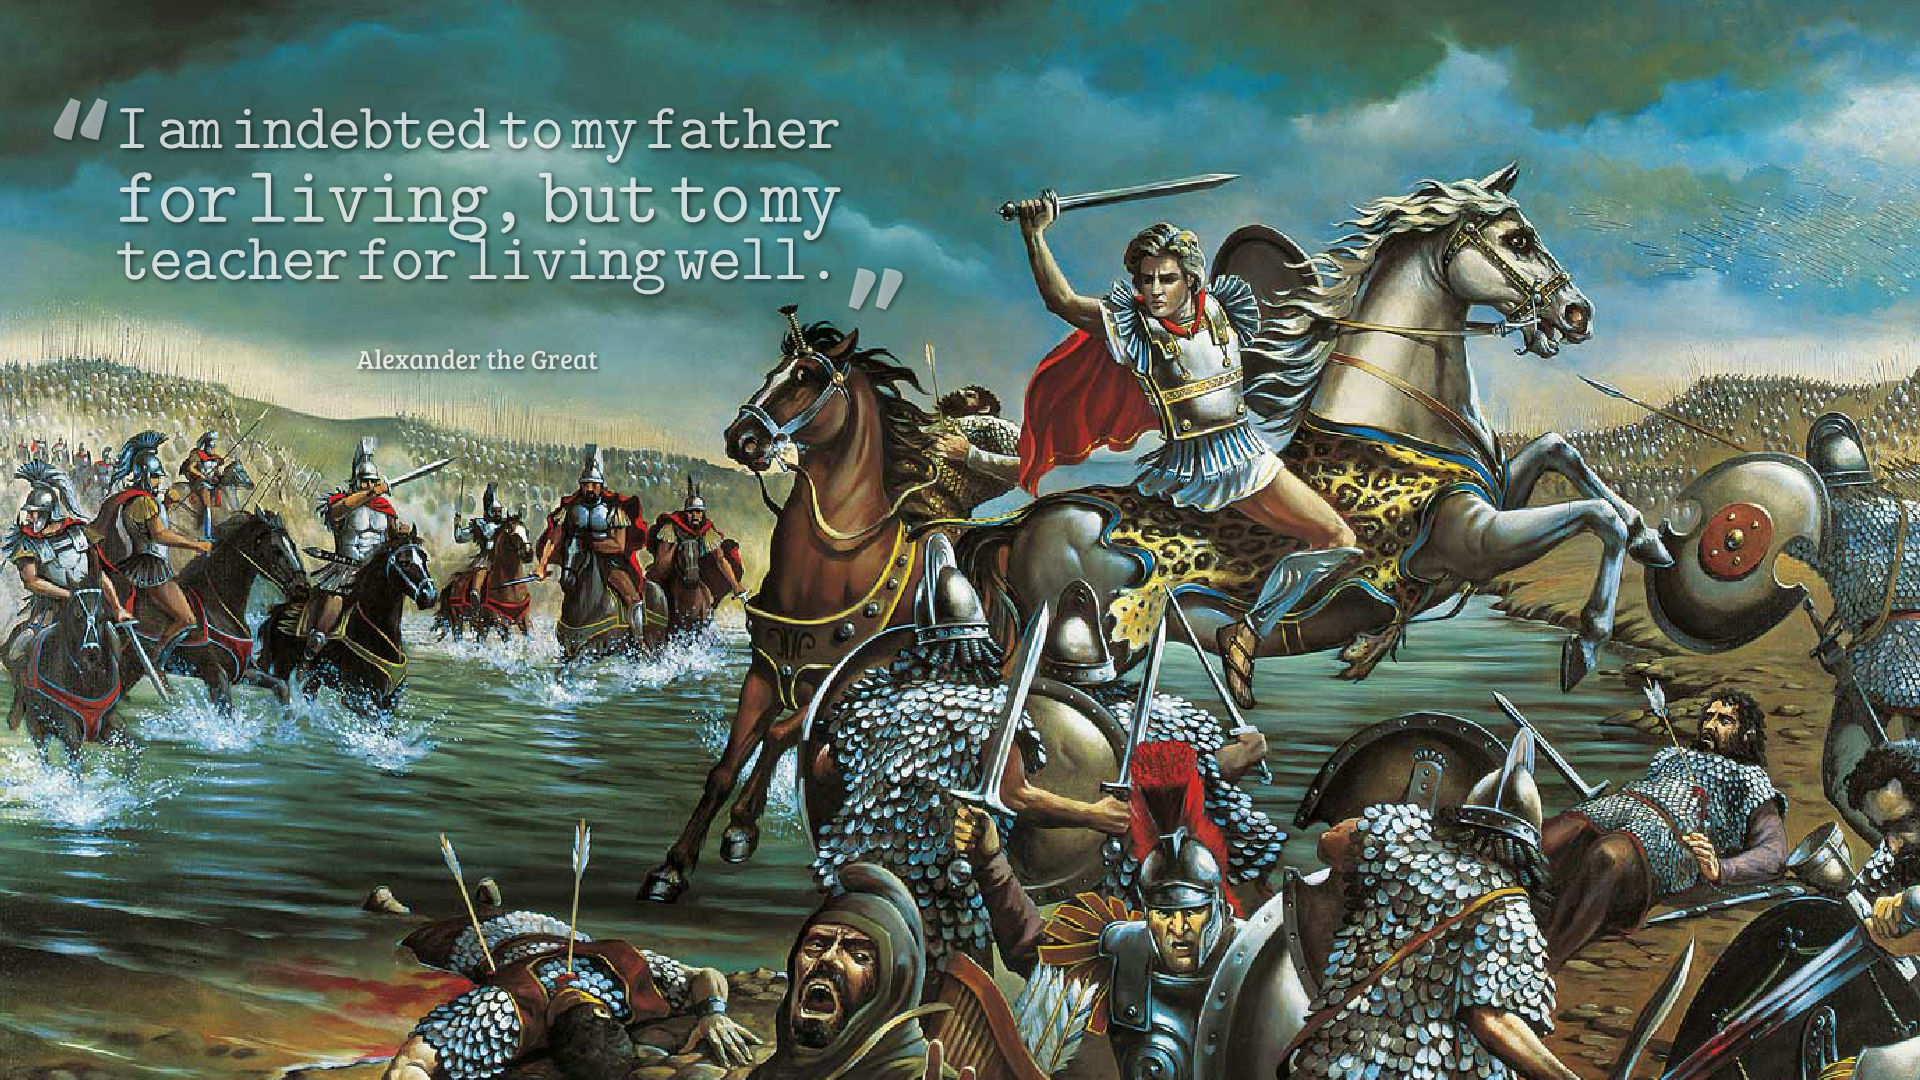 """I am indebted to my father for living, but to my teacher for living well."" – Alexander the Great [1920×1080]"